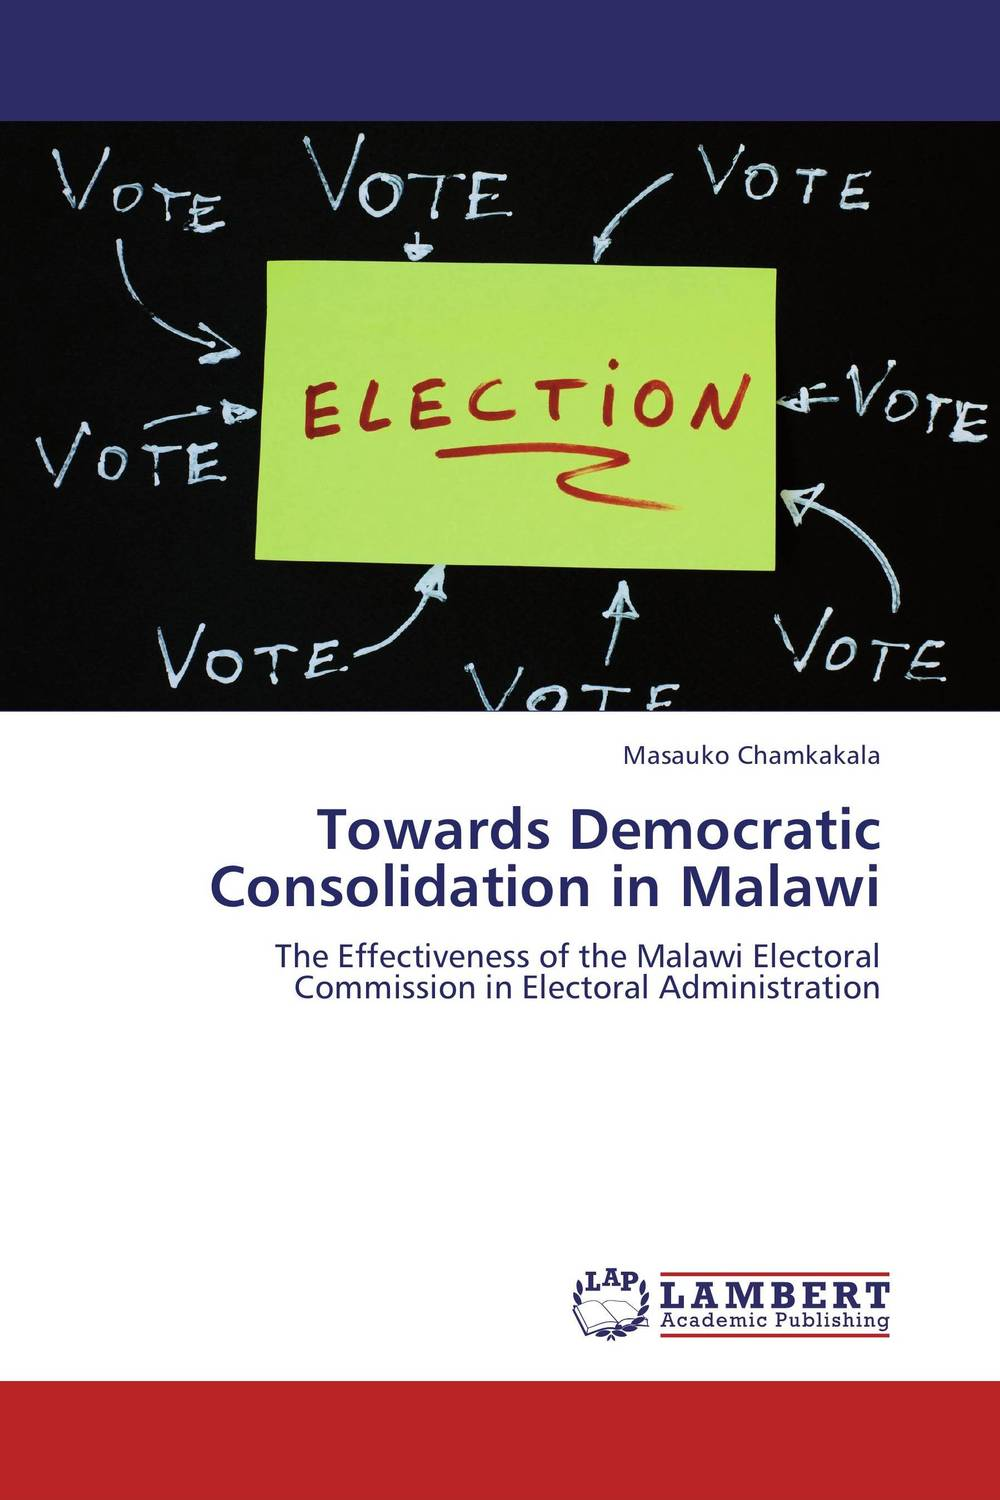 Towards Democratic Consolidation in Malawi